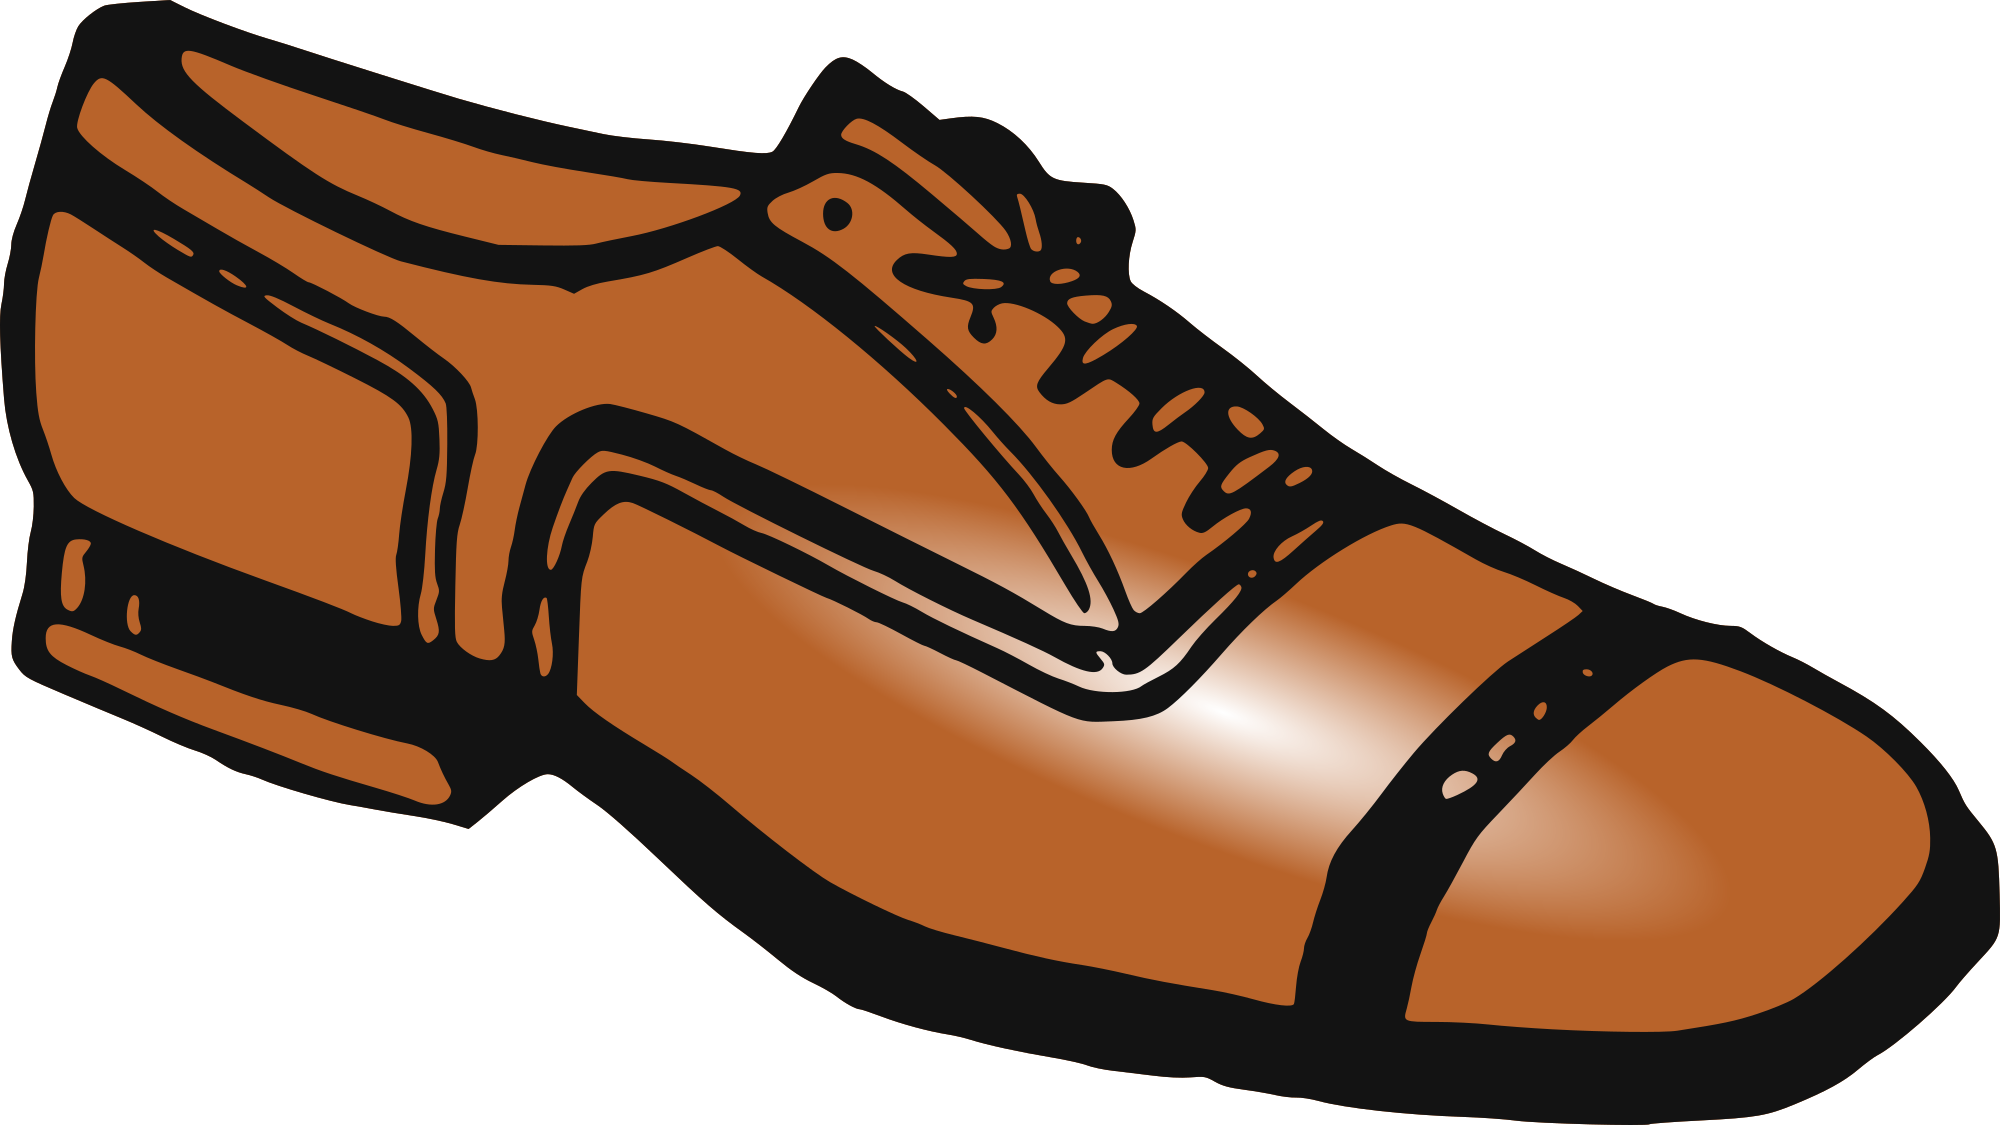 Independence clipart tie shoe. Tying shoes on transparent